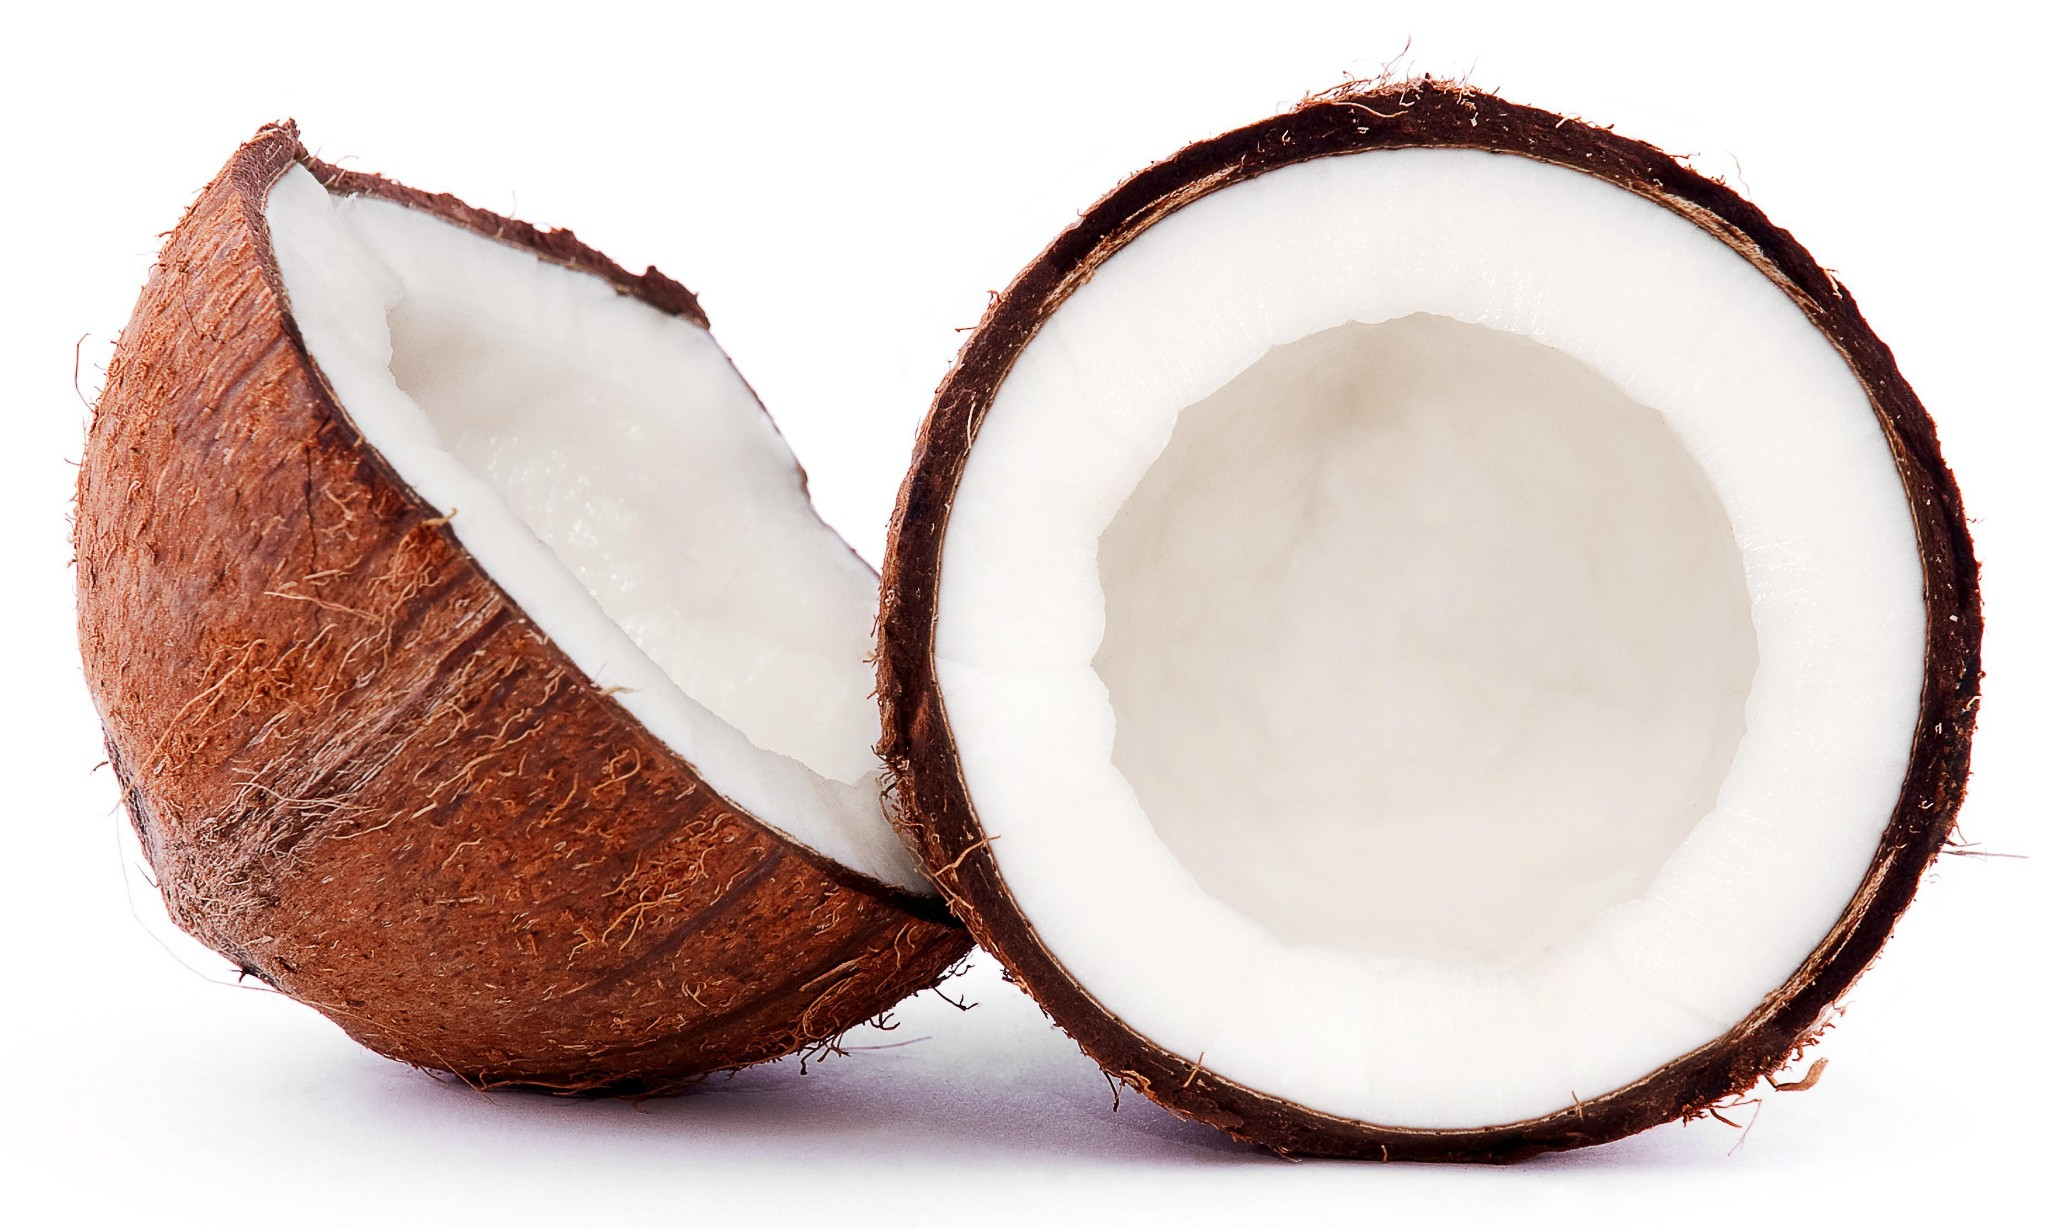 High-fat oil and low-paid farmers: the cost of our coconut craze